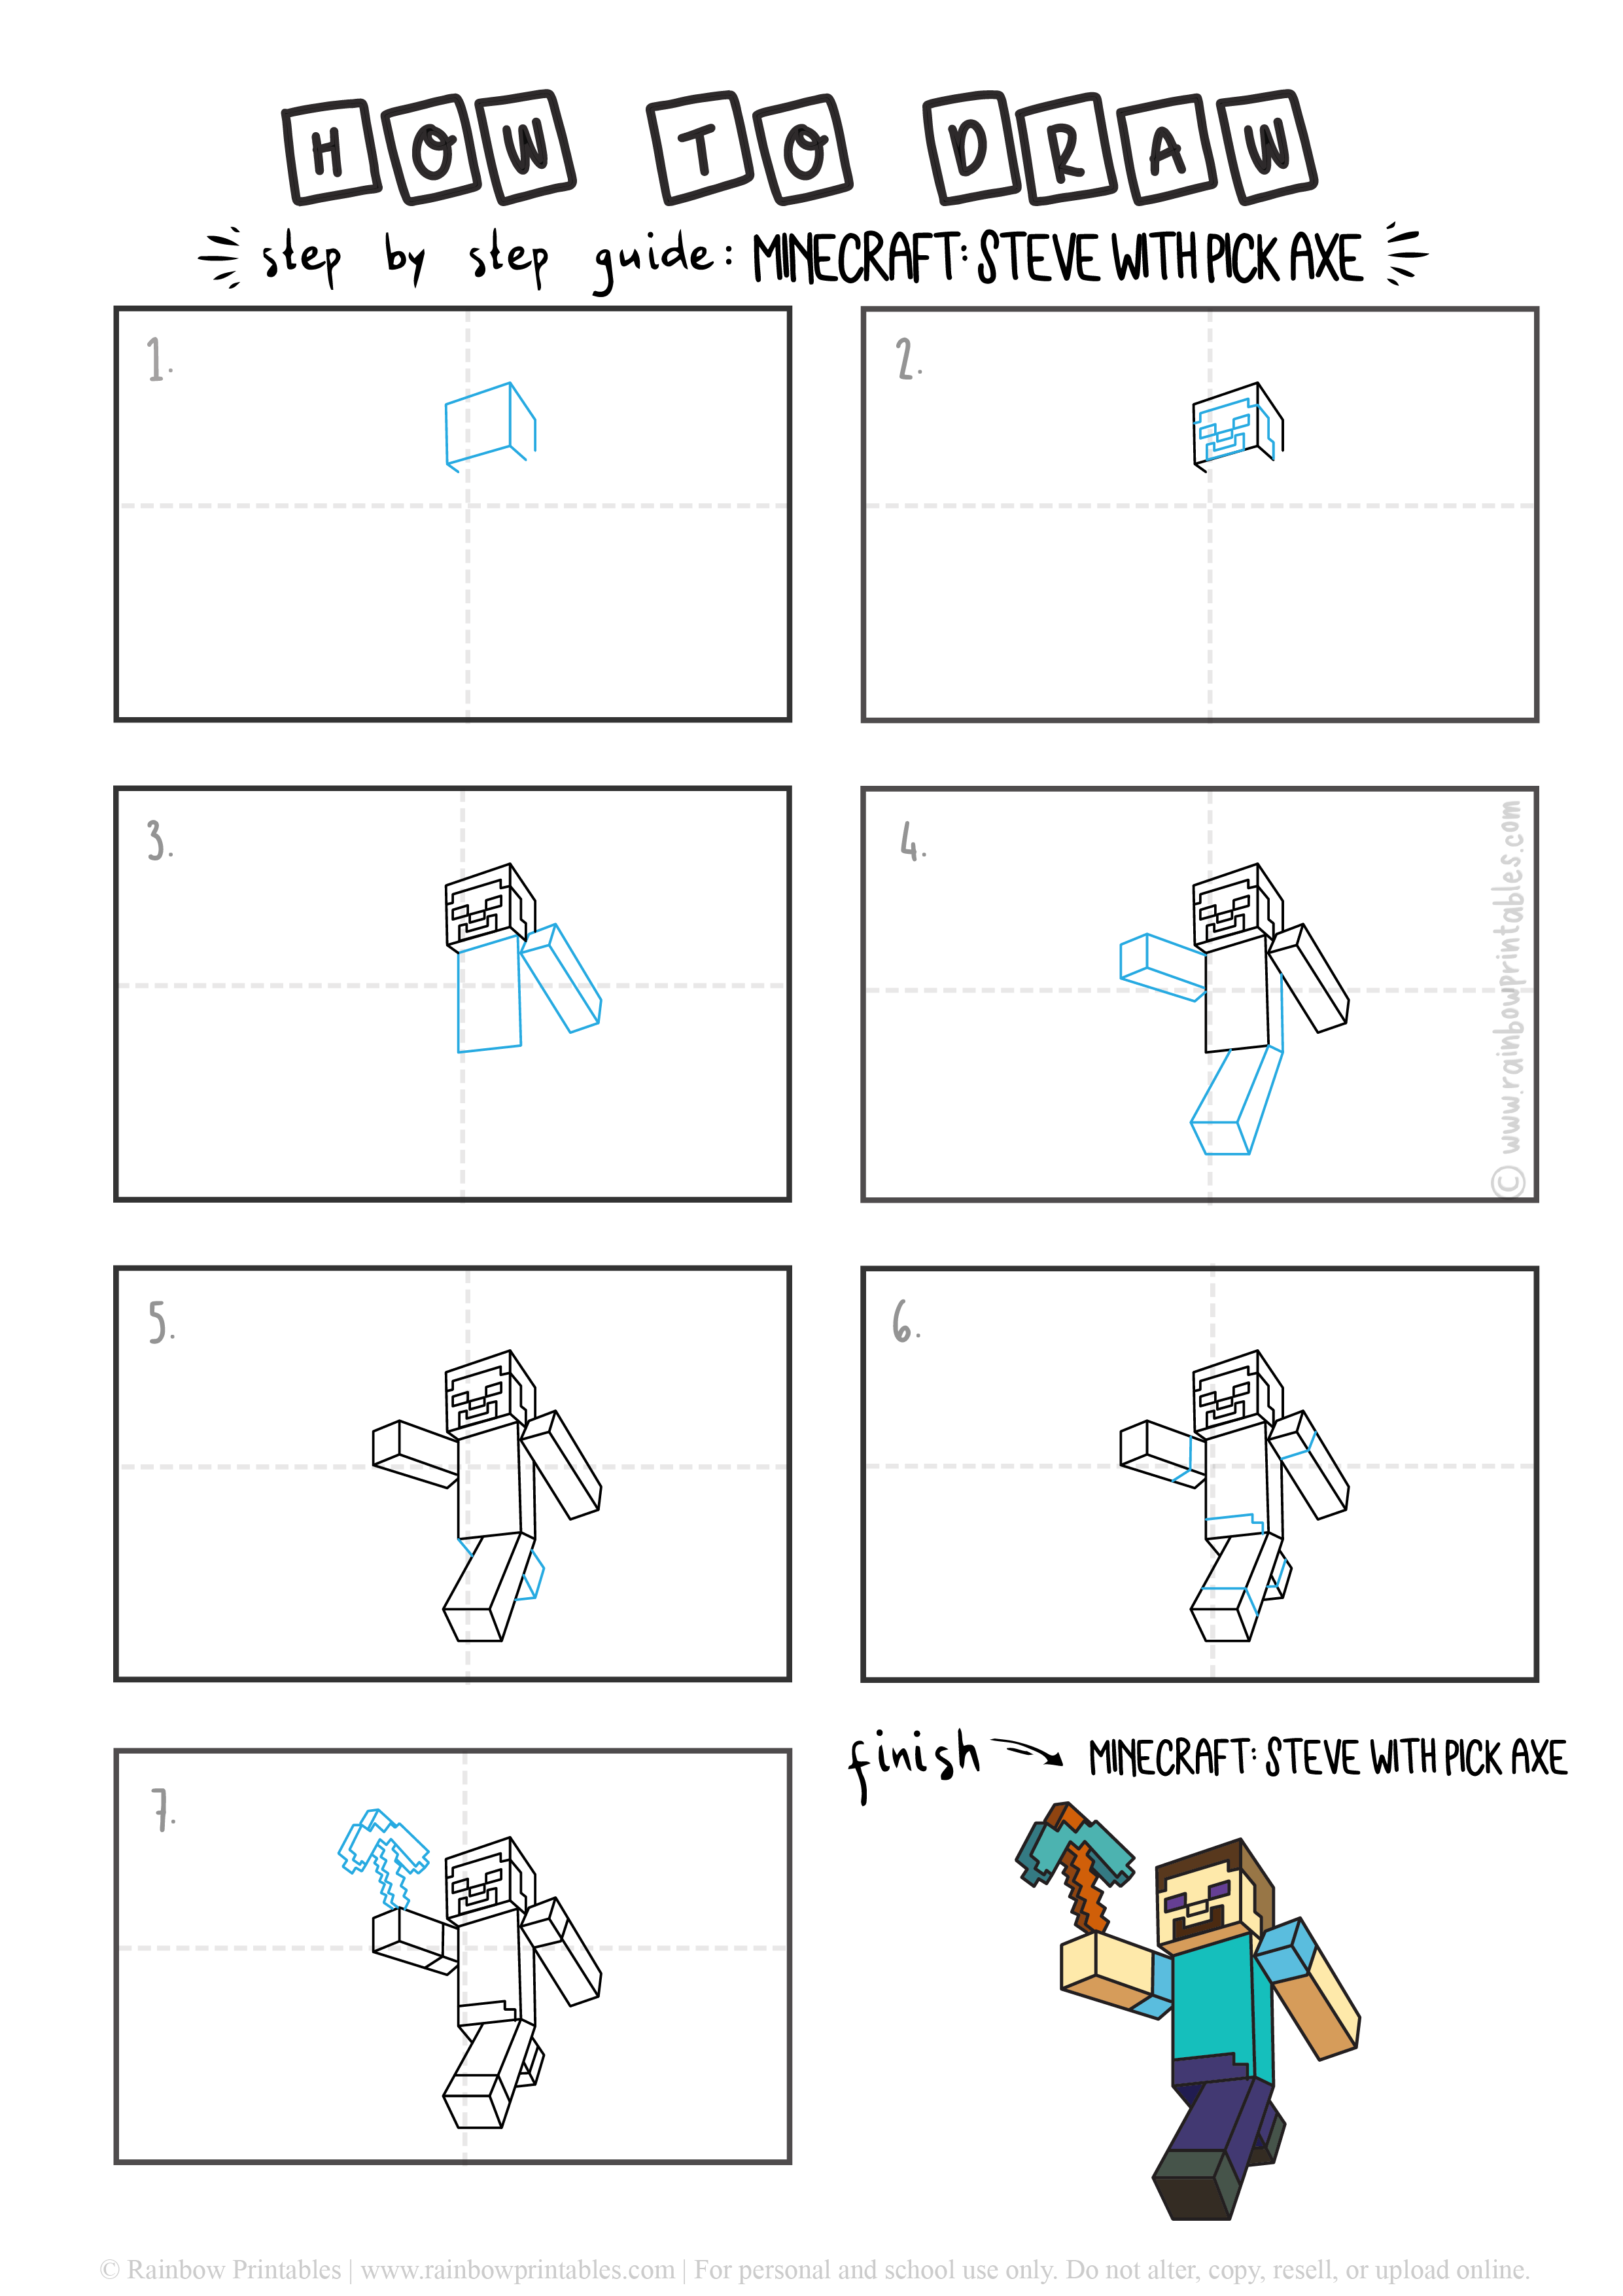 How To Draw Minecraft STEVE WIT PICK AXE CHARACTER Step by Step Art for Kids Tutorial Guide Video Game